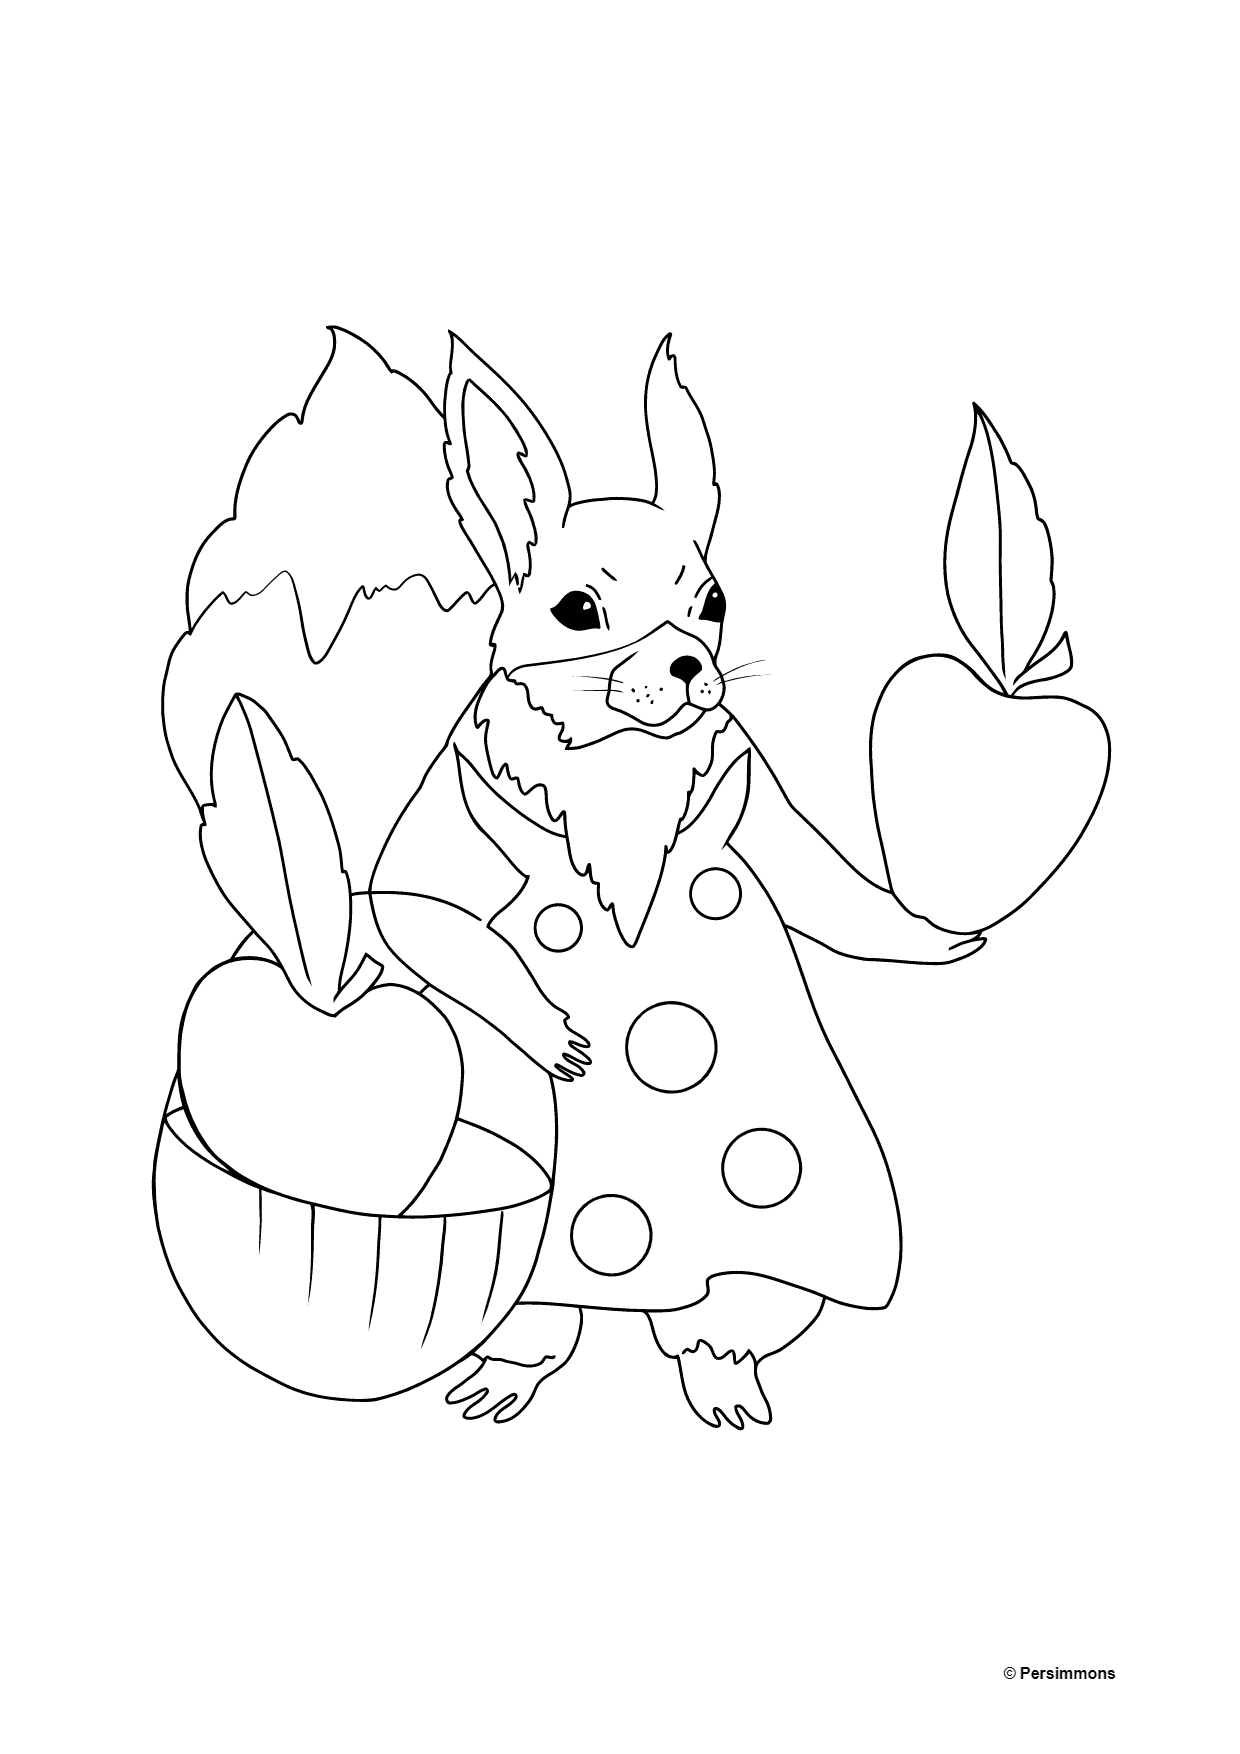 Summer Coloring Page - Squirrels with Apples for Children